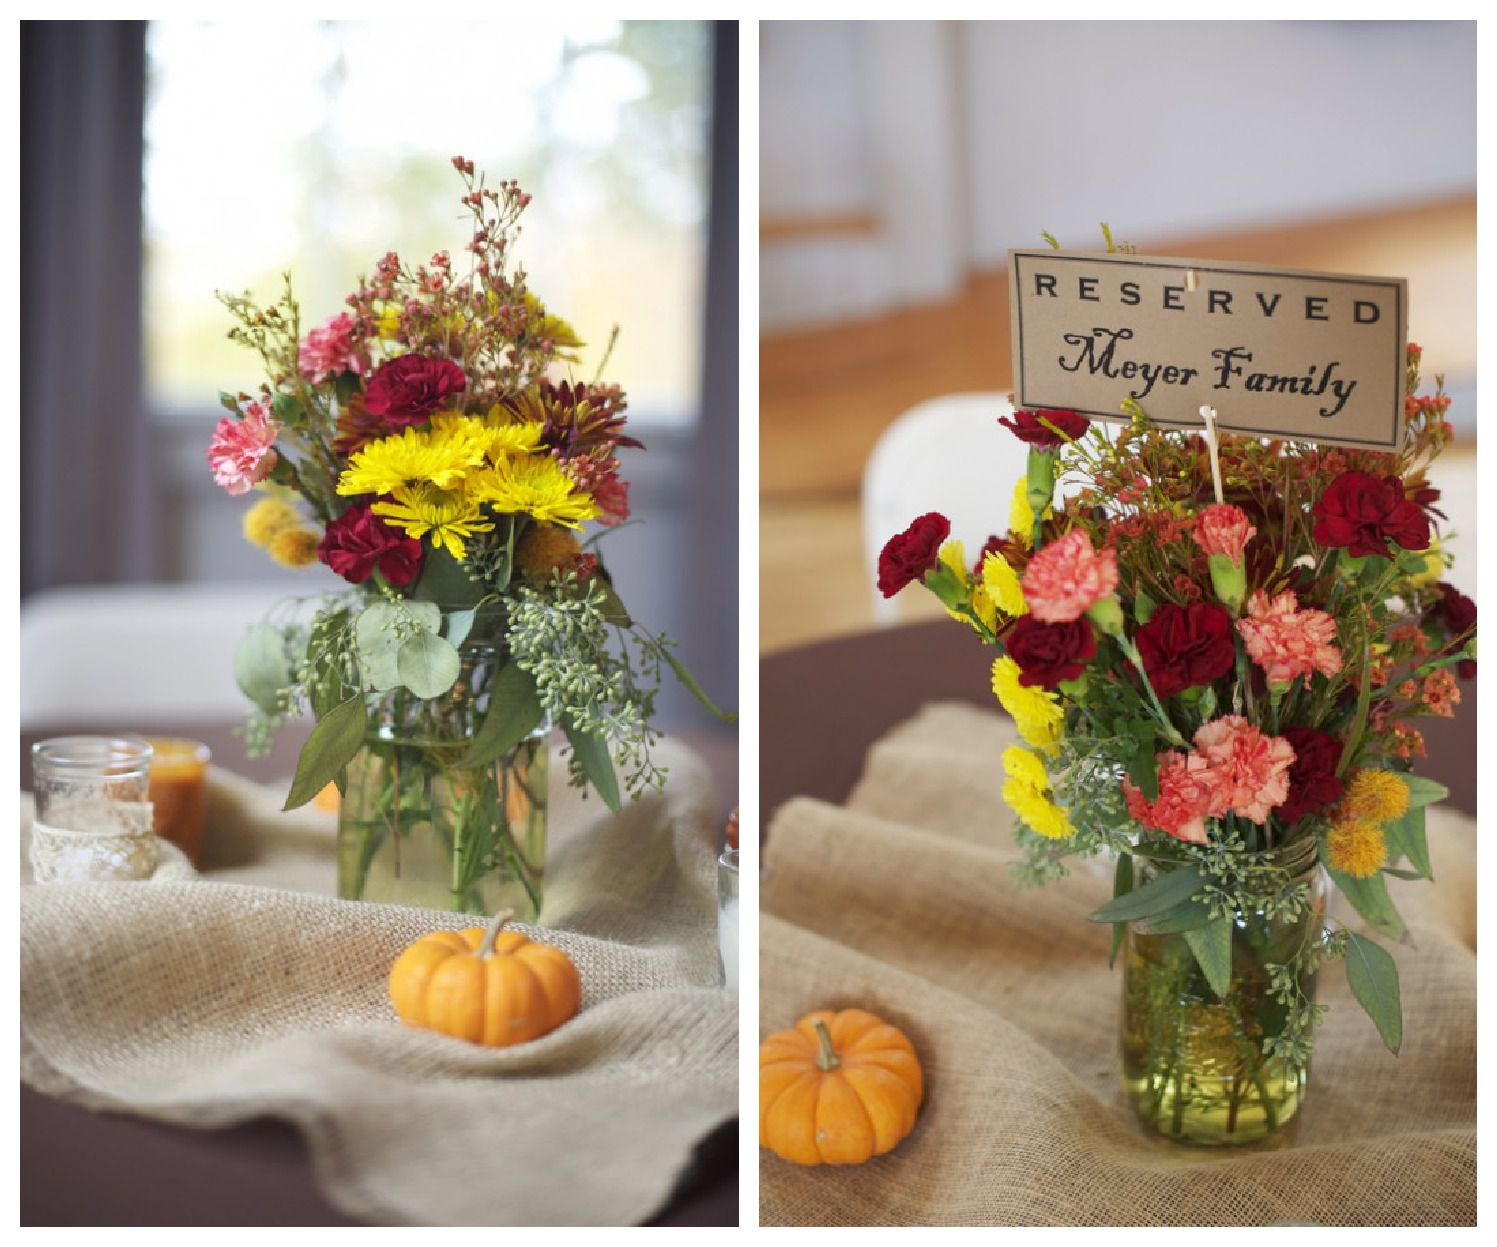 Rustic wedding centerpiece ideas rustic wedding chic fall rustic wedding centerpiece junglespirit Choice Image